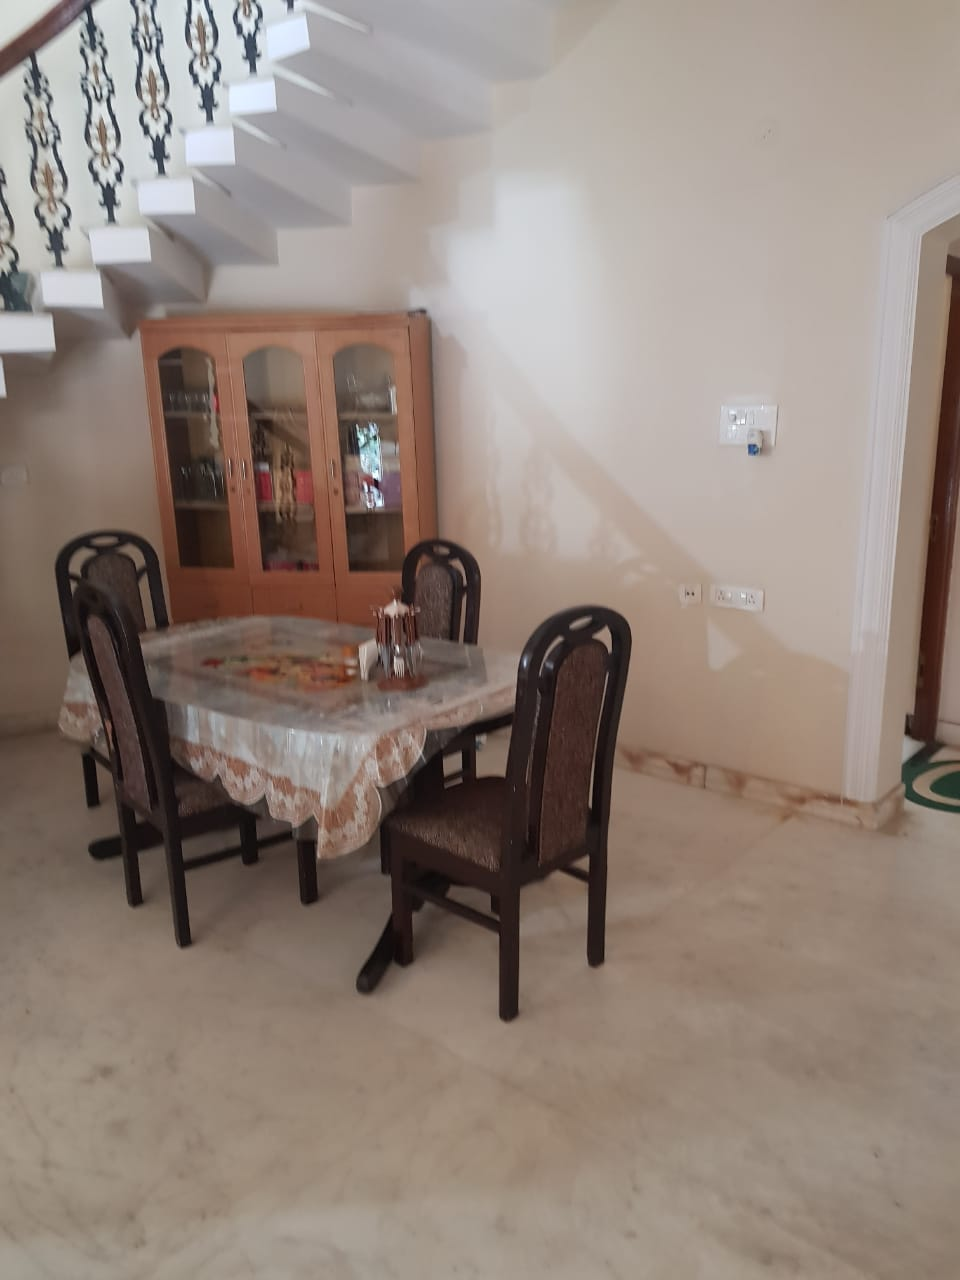 Luxurius 4bhk fully furniished independent bunglow on rent in swavlambi nagar